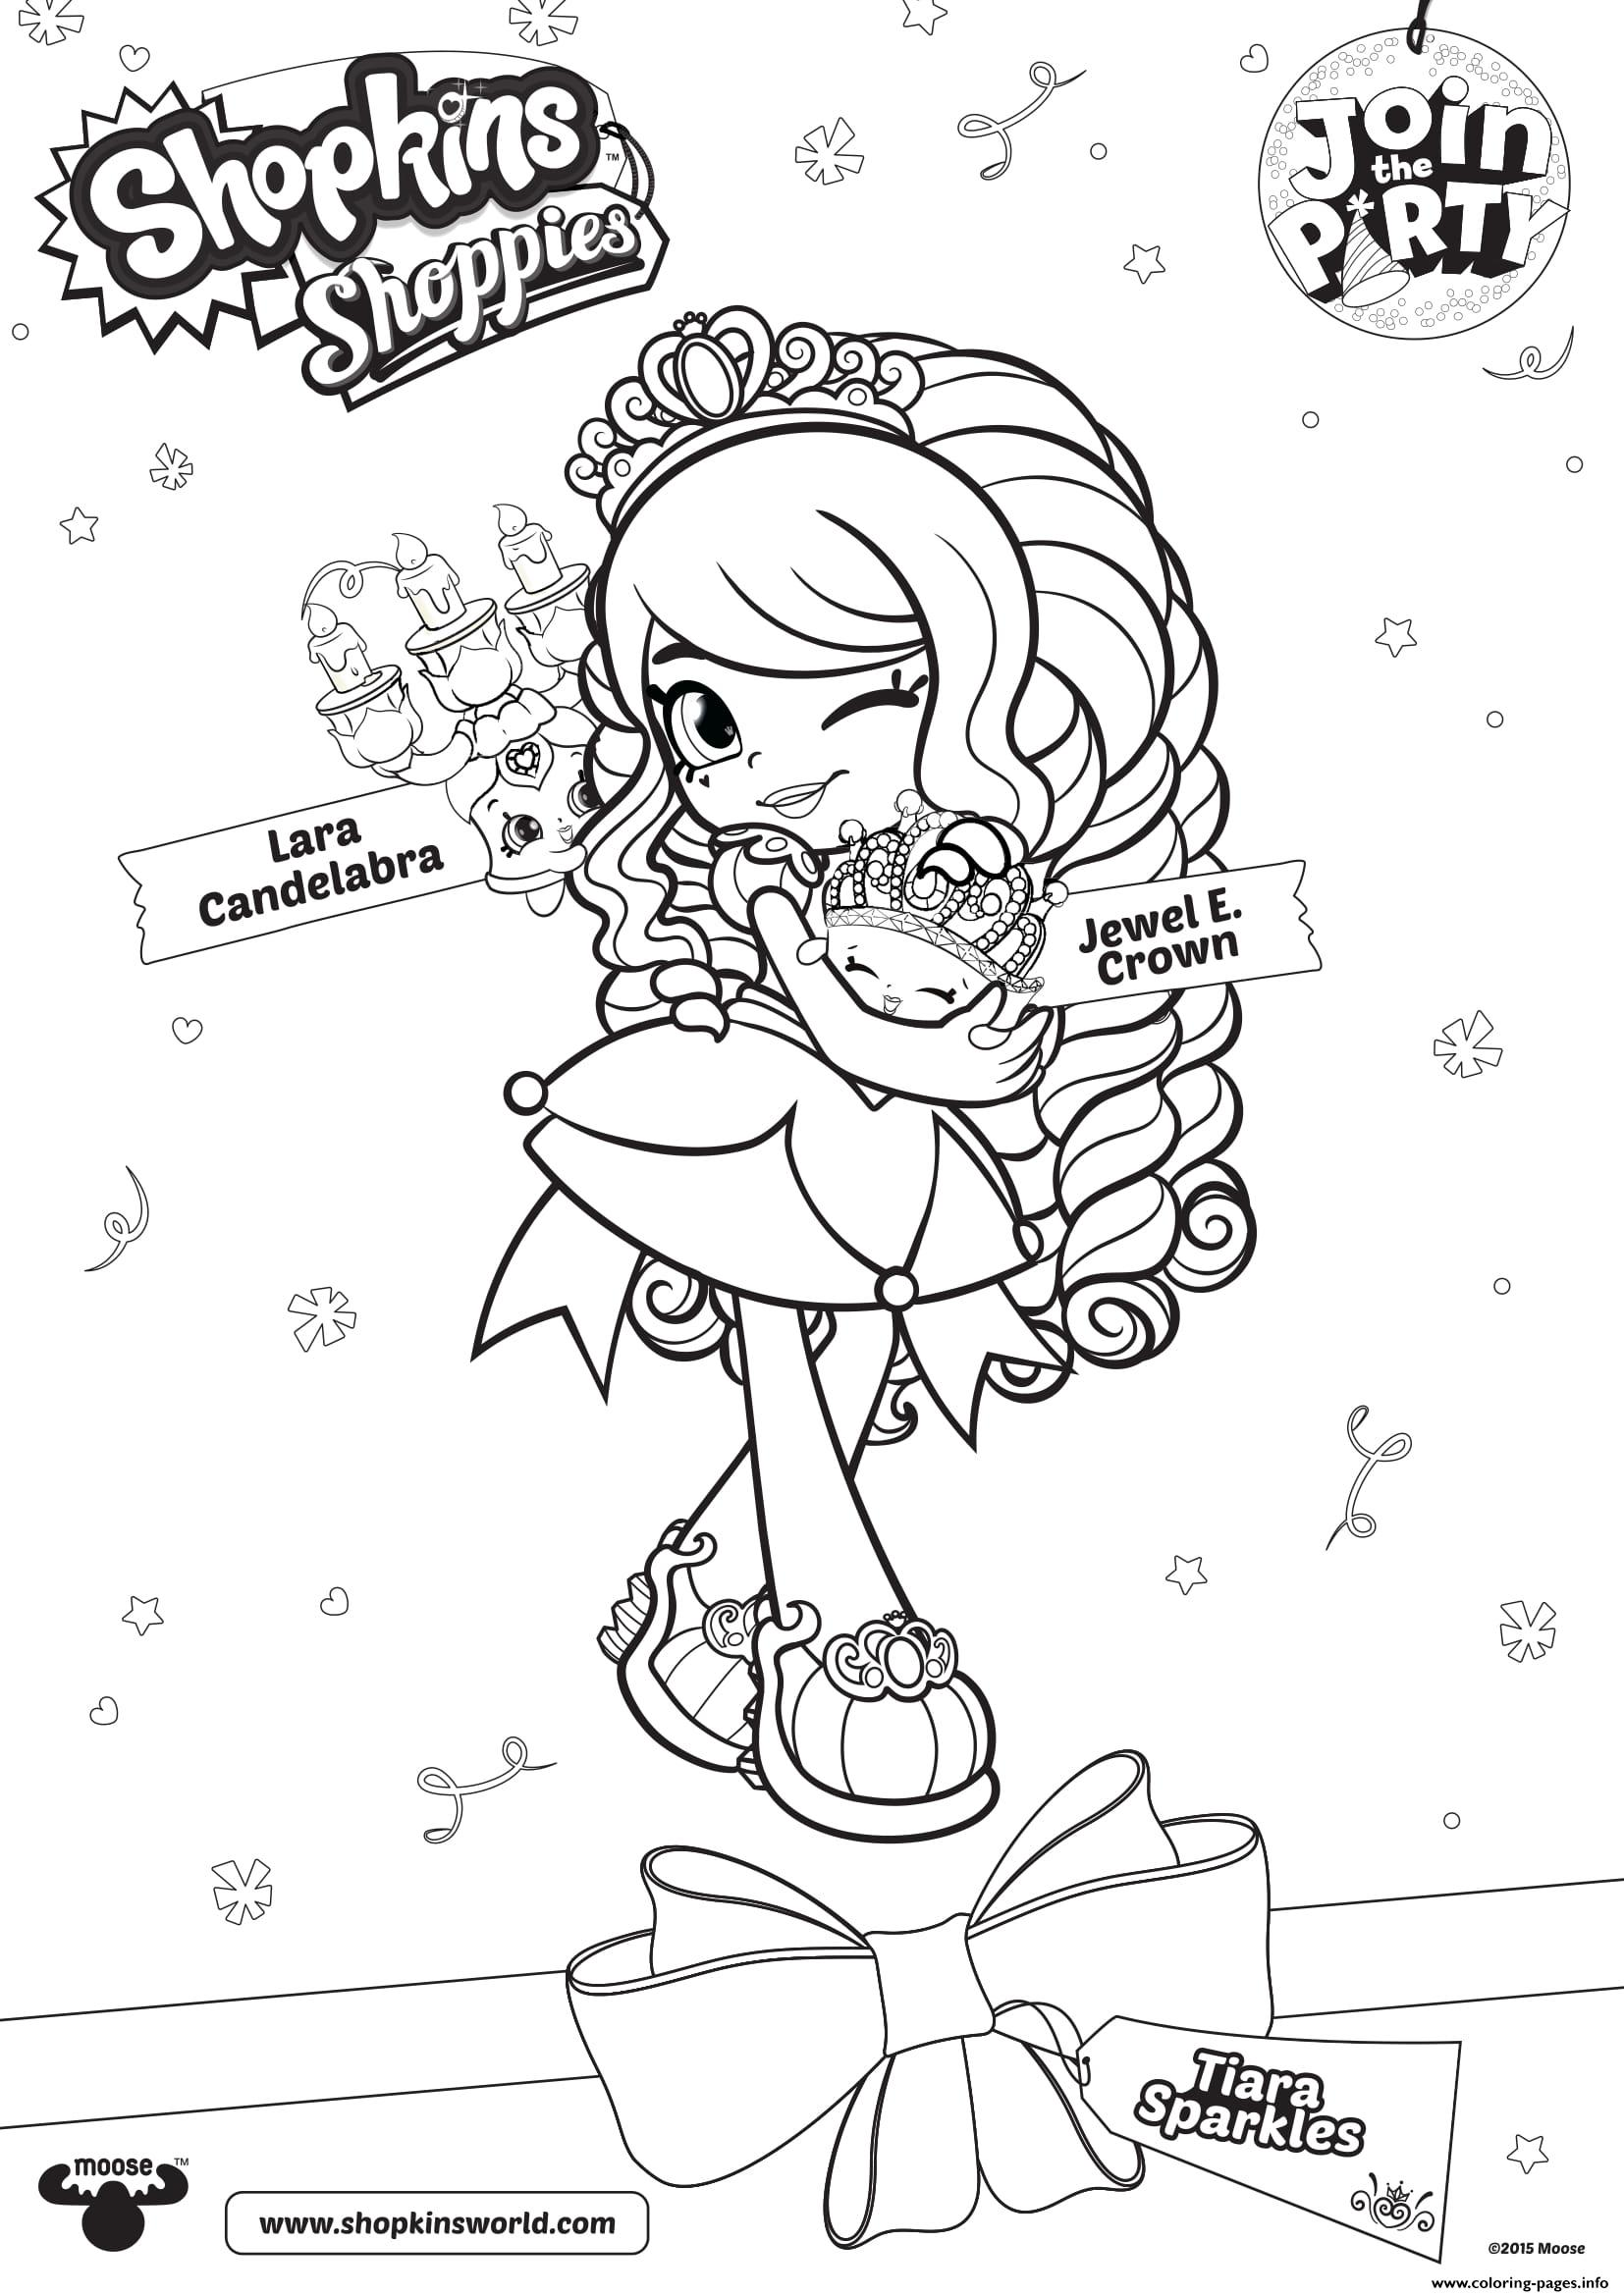 shopkins shoppies join the party lara candelabra jewel crown coloring pages